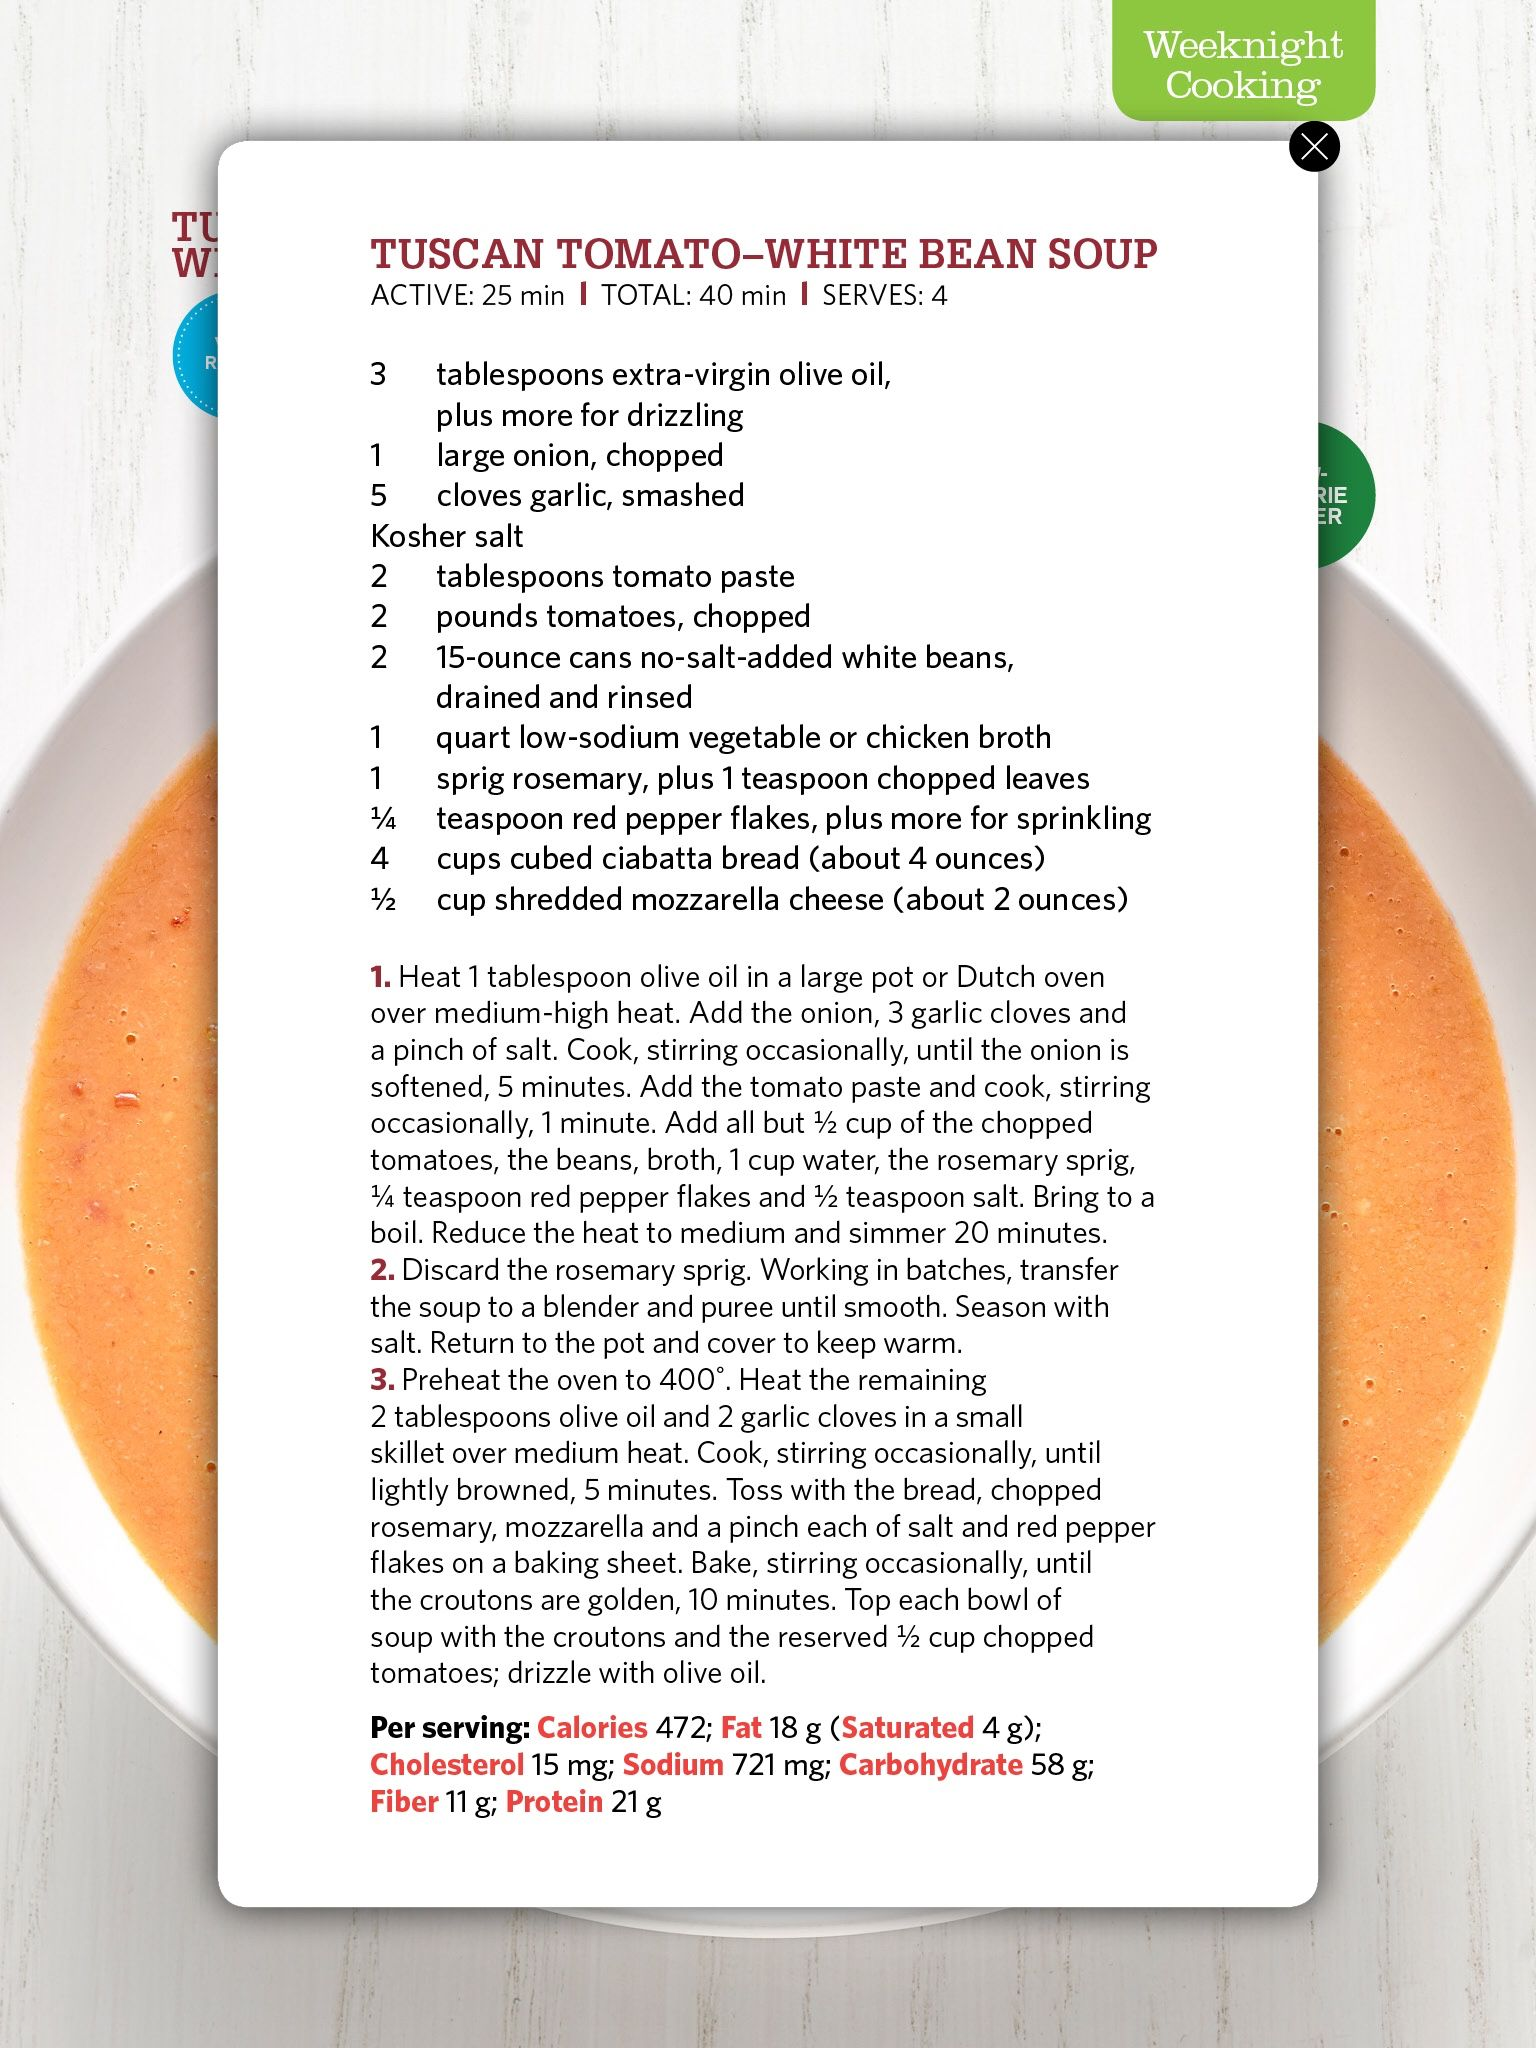 Pin by pam rochford on soups pinterest recipe cards soups and tuscan bean soup white bean soup veggie food food networktrisha recipe cards tomato soups soup recipes tomatoes september 2014 forumfinder Choice Image